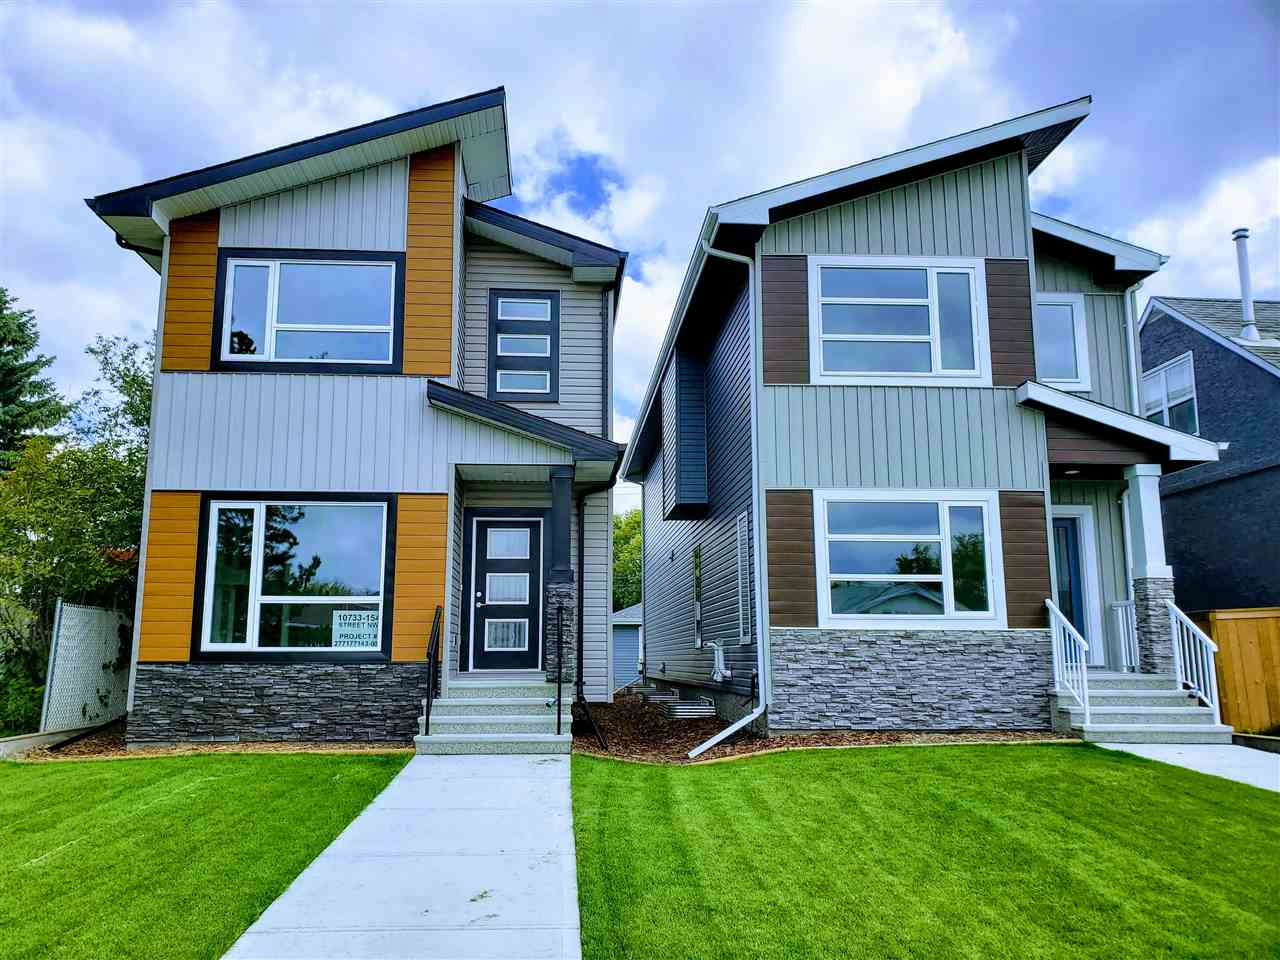 MLS® listing #E4164841 for sale located at 10731 154 Street NW